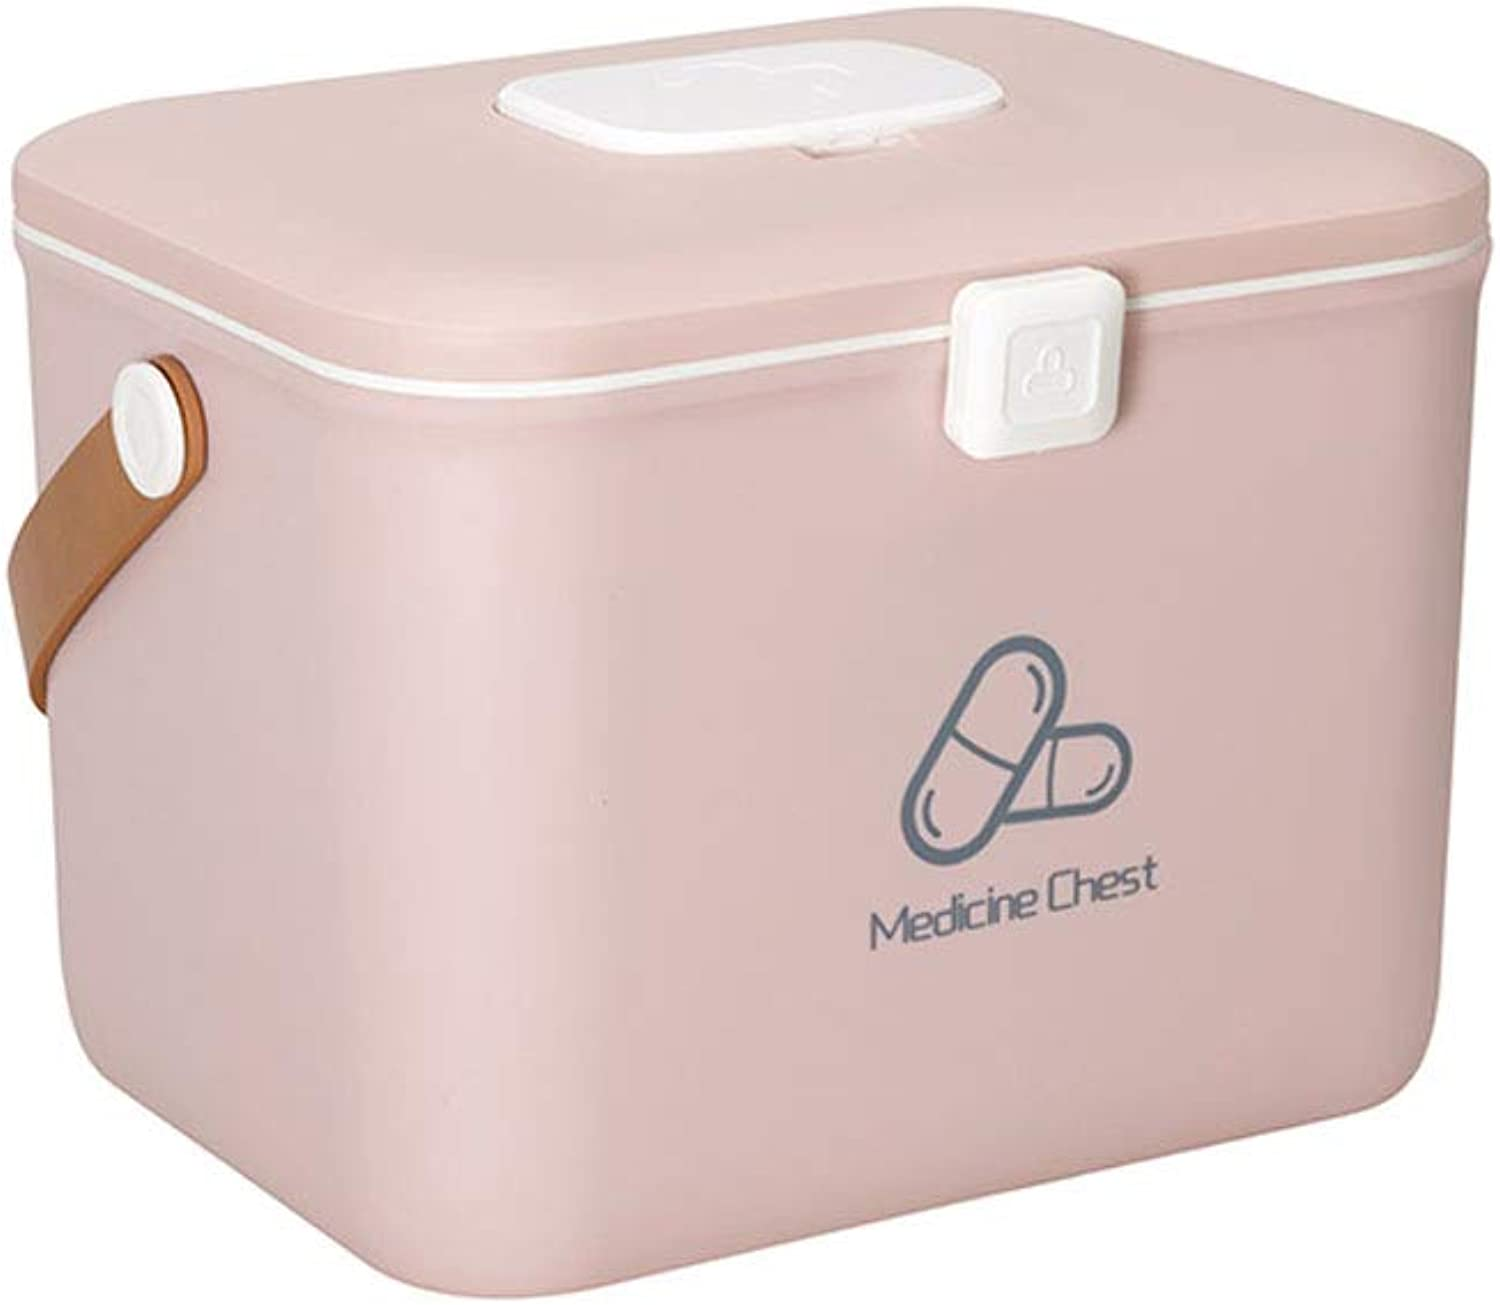 GSHWJS-Medical Chest Medicine Box Household Large Capacity Household Multi-Layer Medical Storage Box First Aid Kit Medical Kit 23x32x25cm (color   Pink)